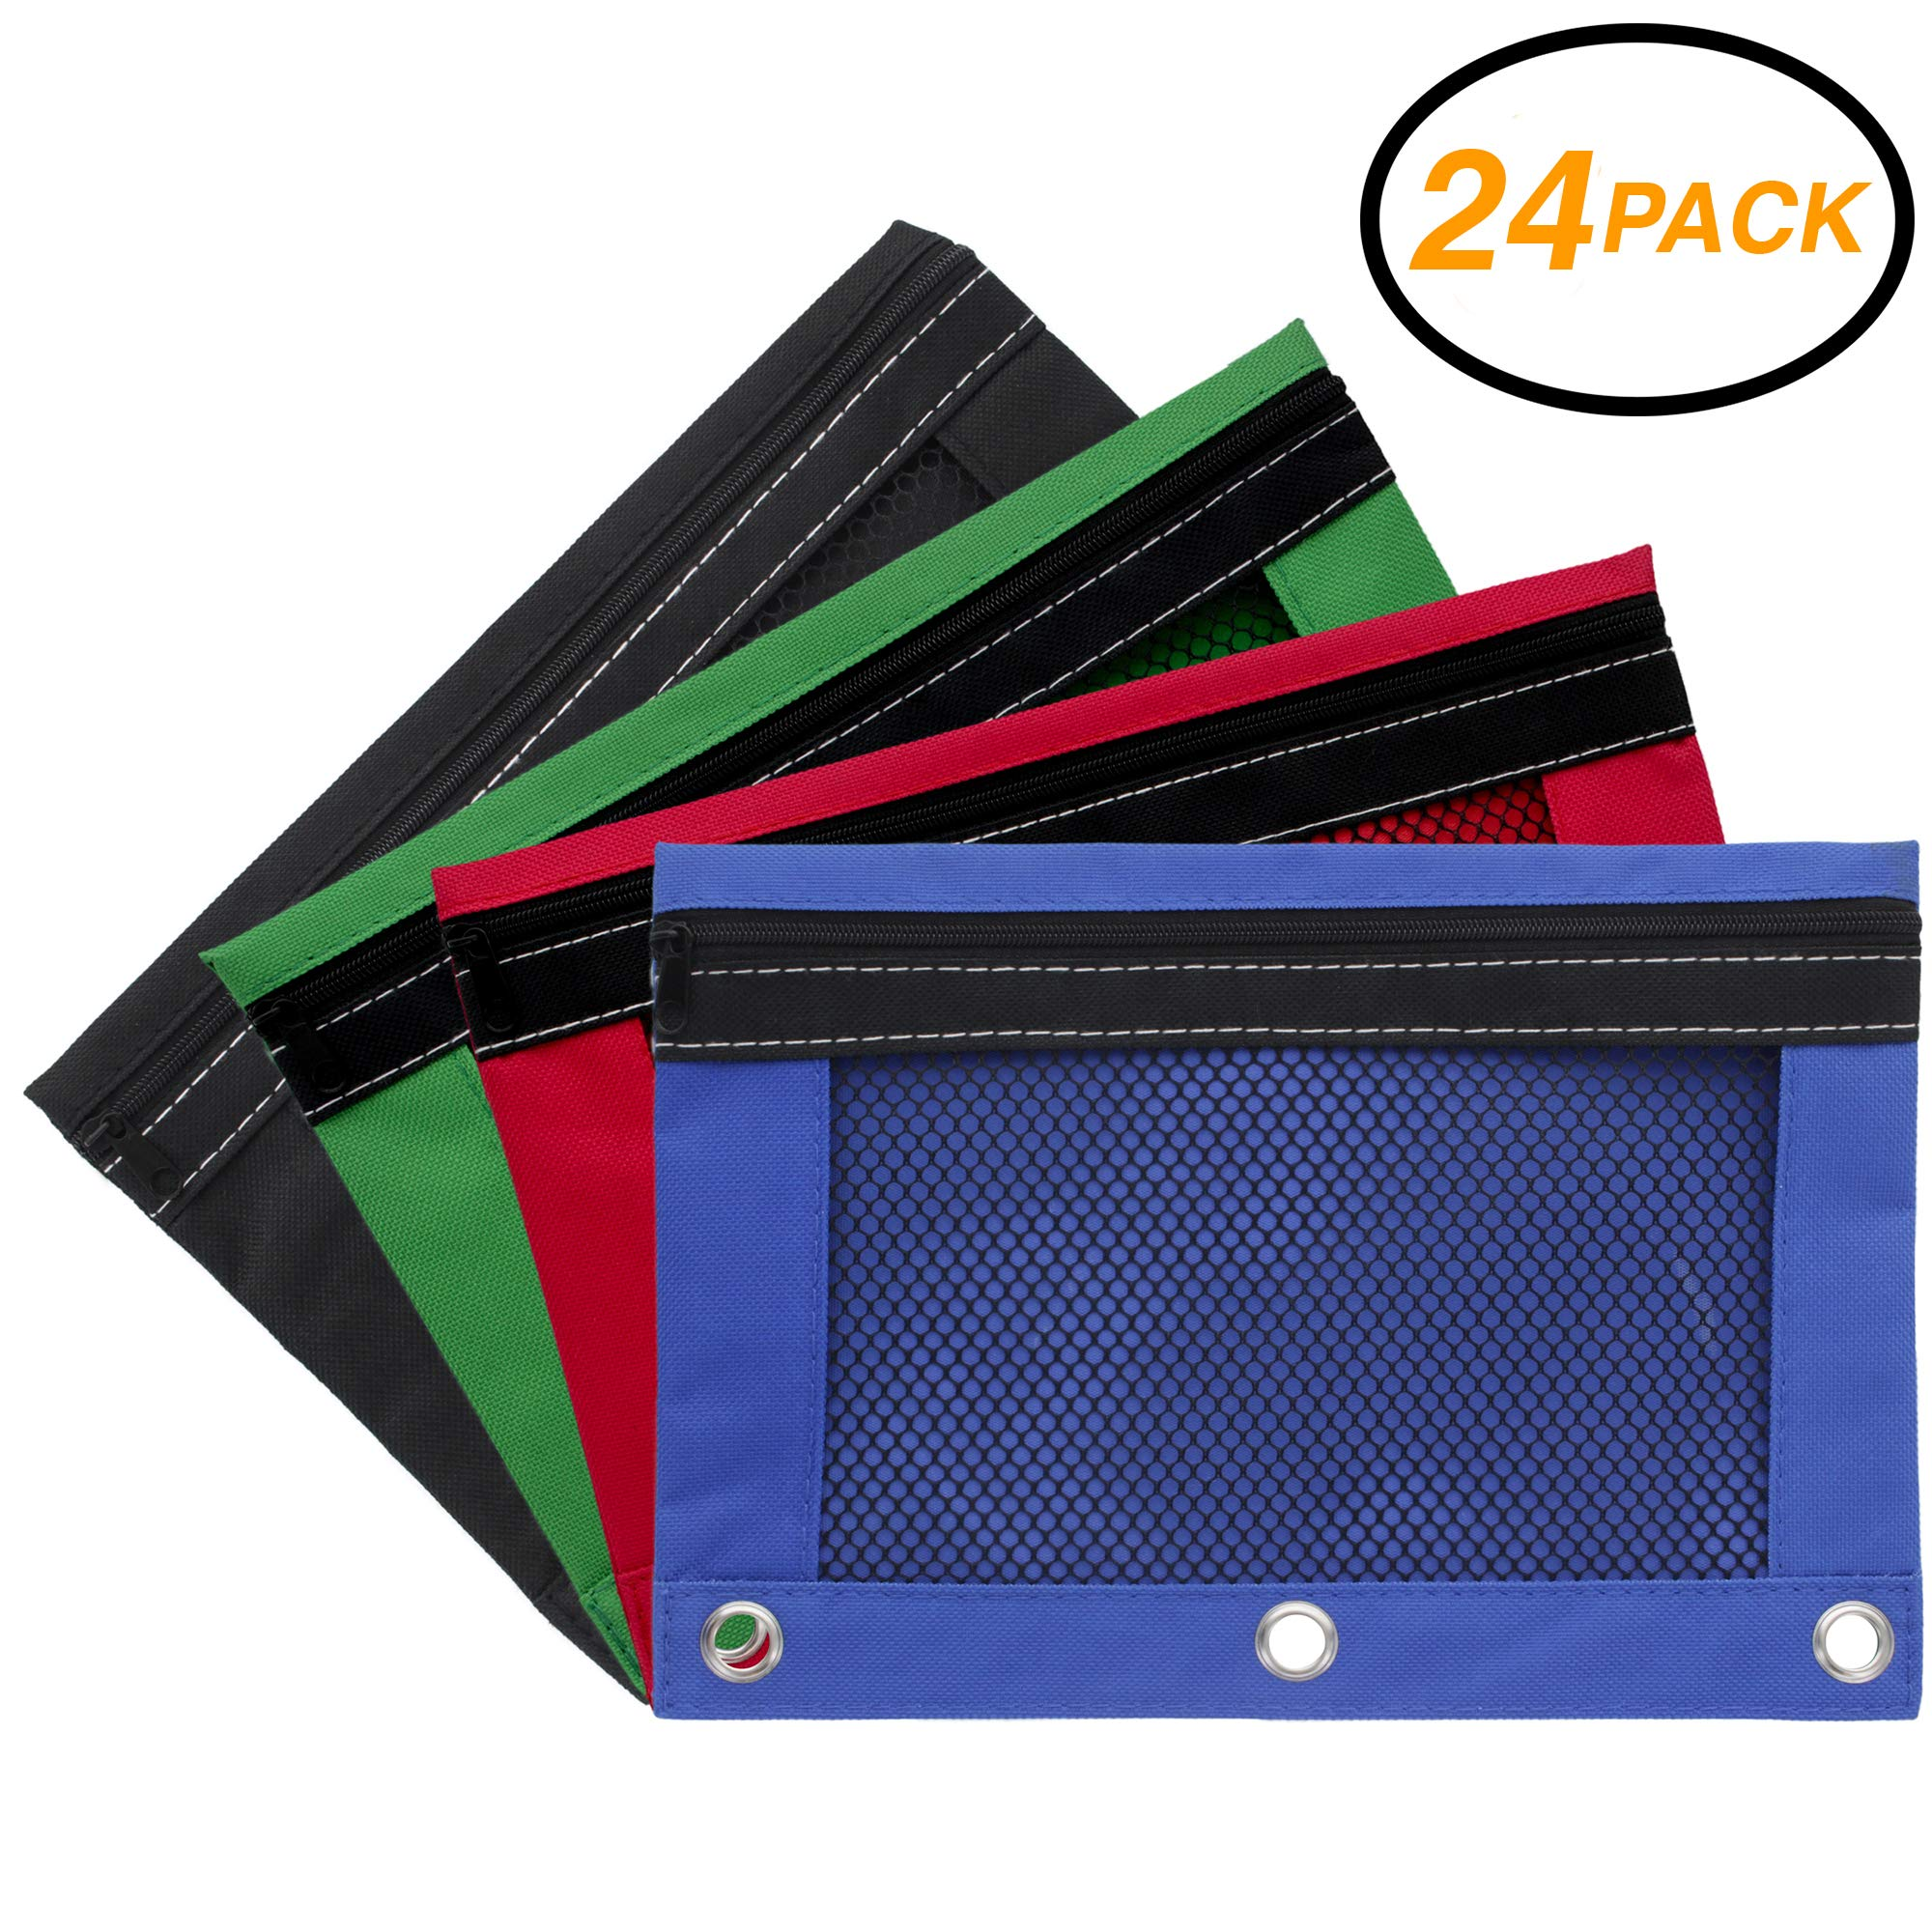 Emraw Zippered Pencil Pouches with 3-Ring Grommet Holes & Quick View Mesh Pocket - Colors Included: Black, Green, Red, Blue (24 Pack) by Emraw